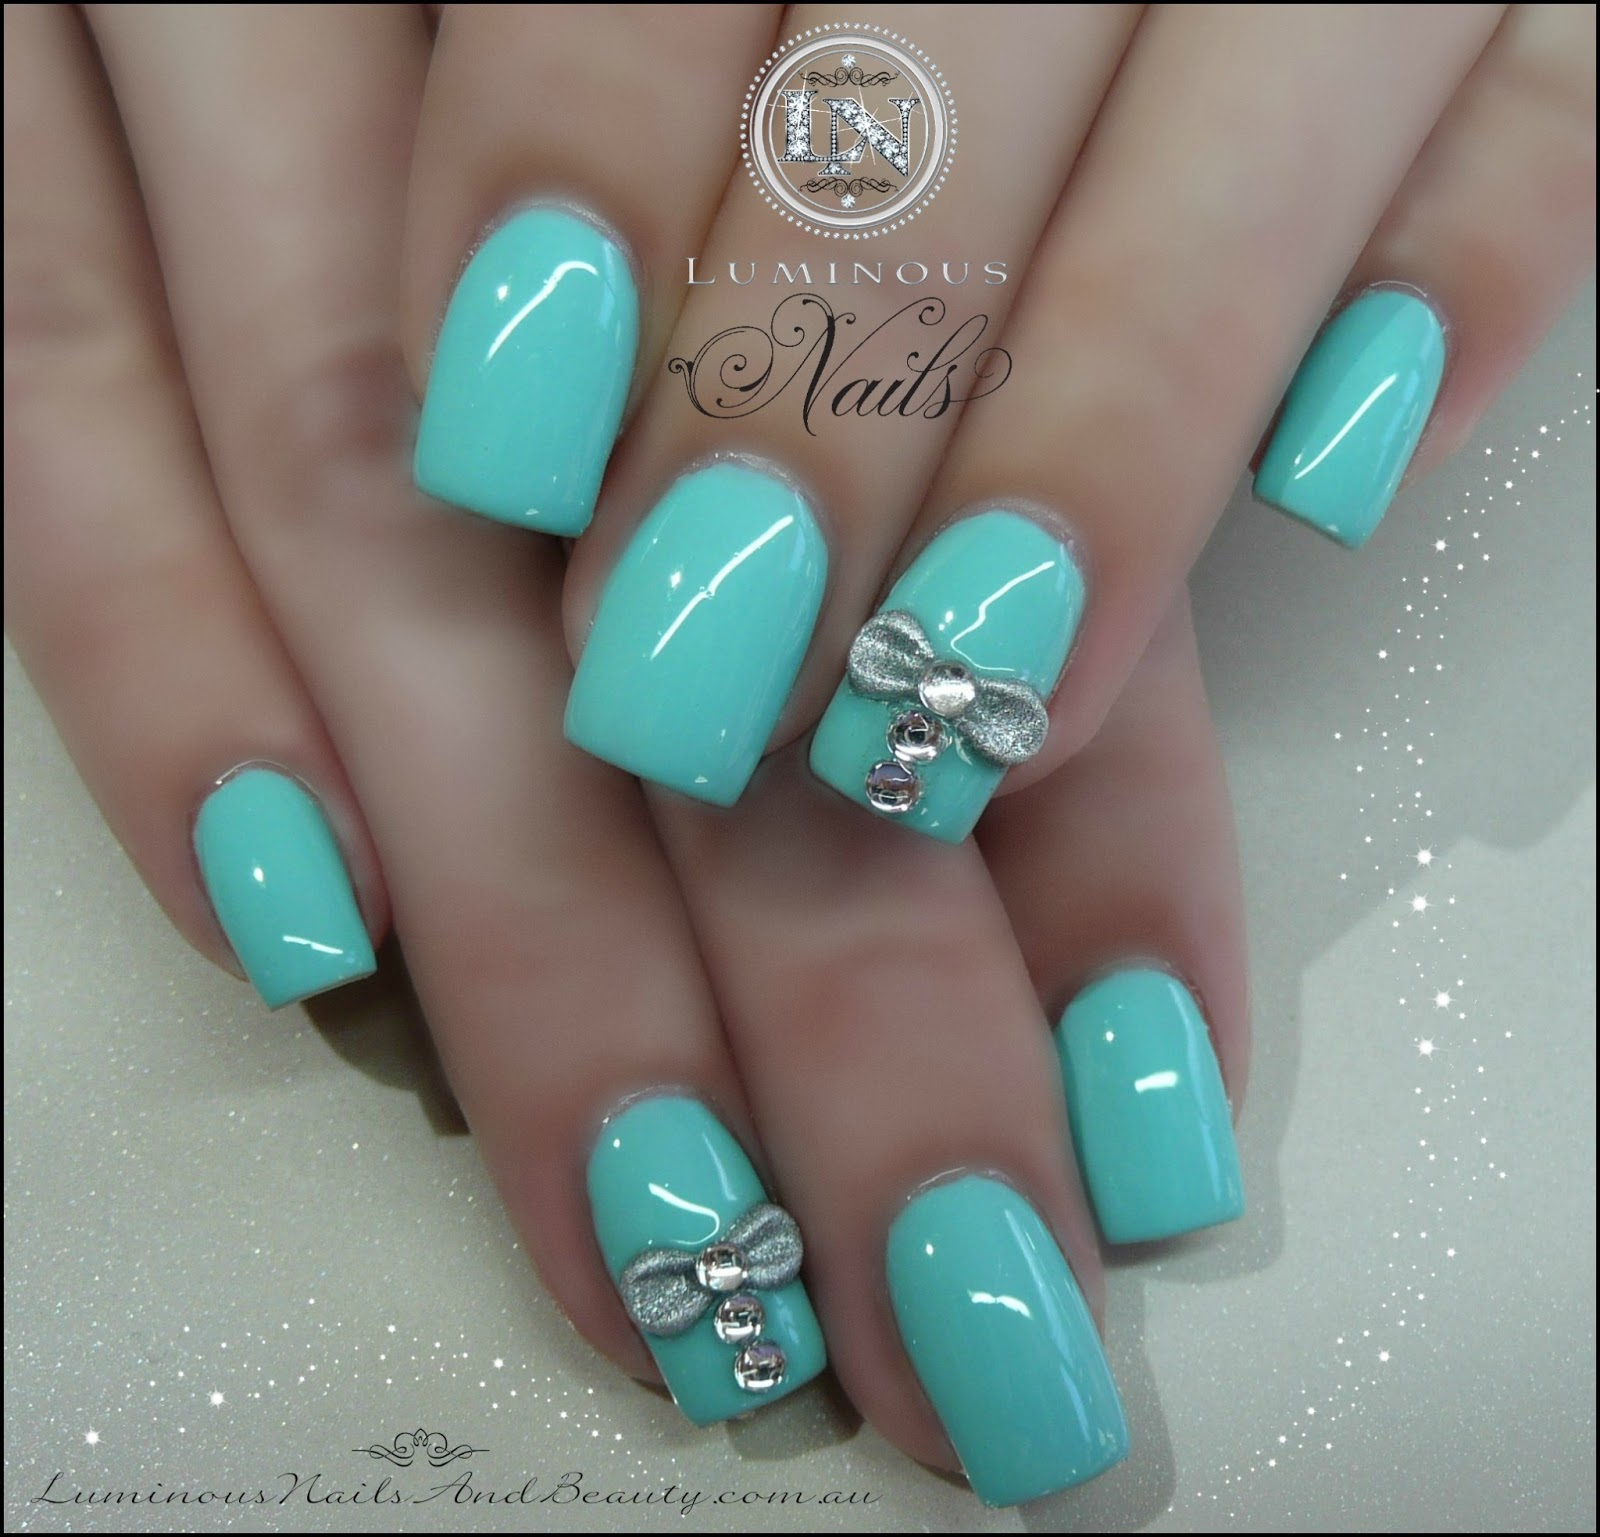 luminous nails july 2013